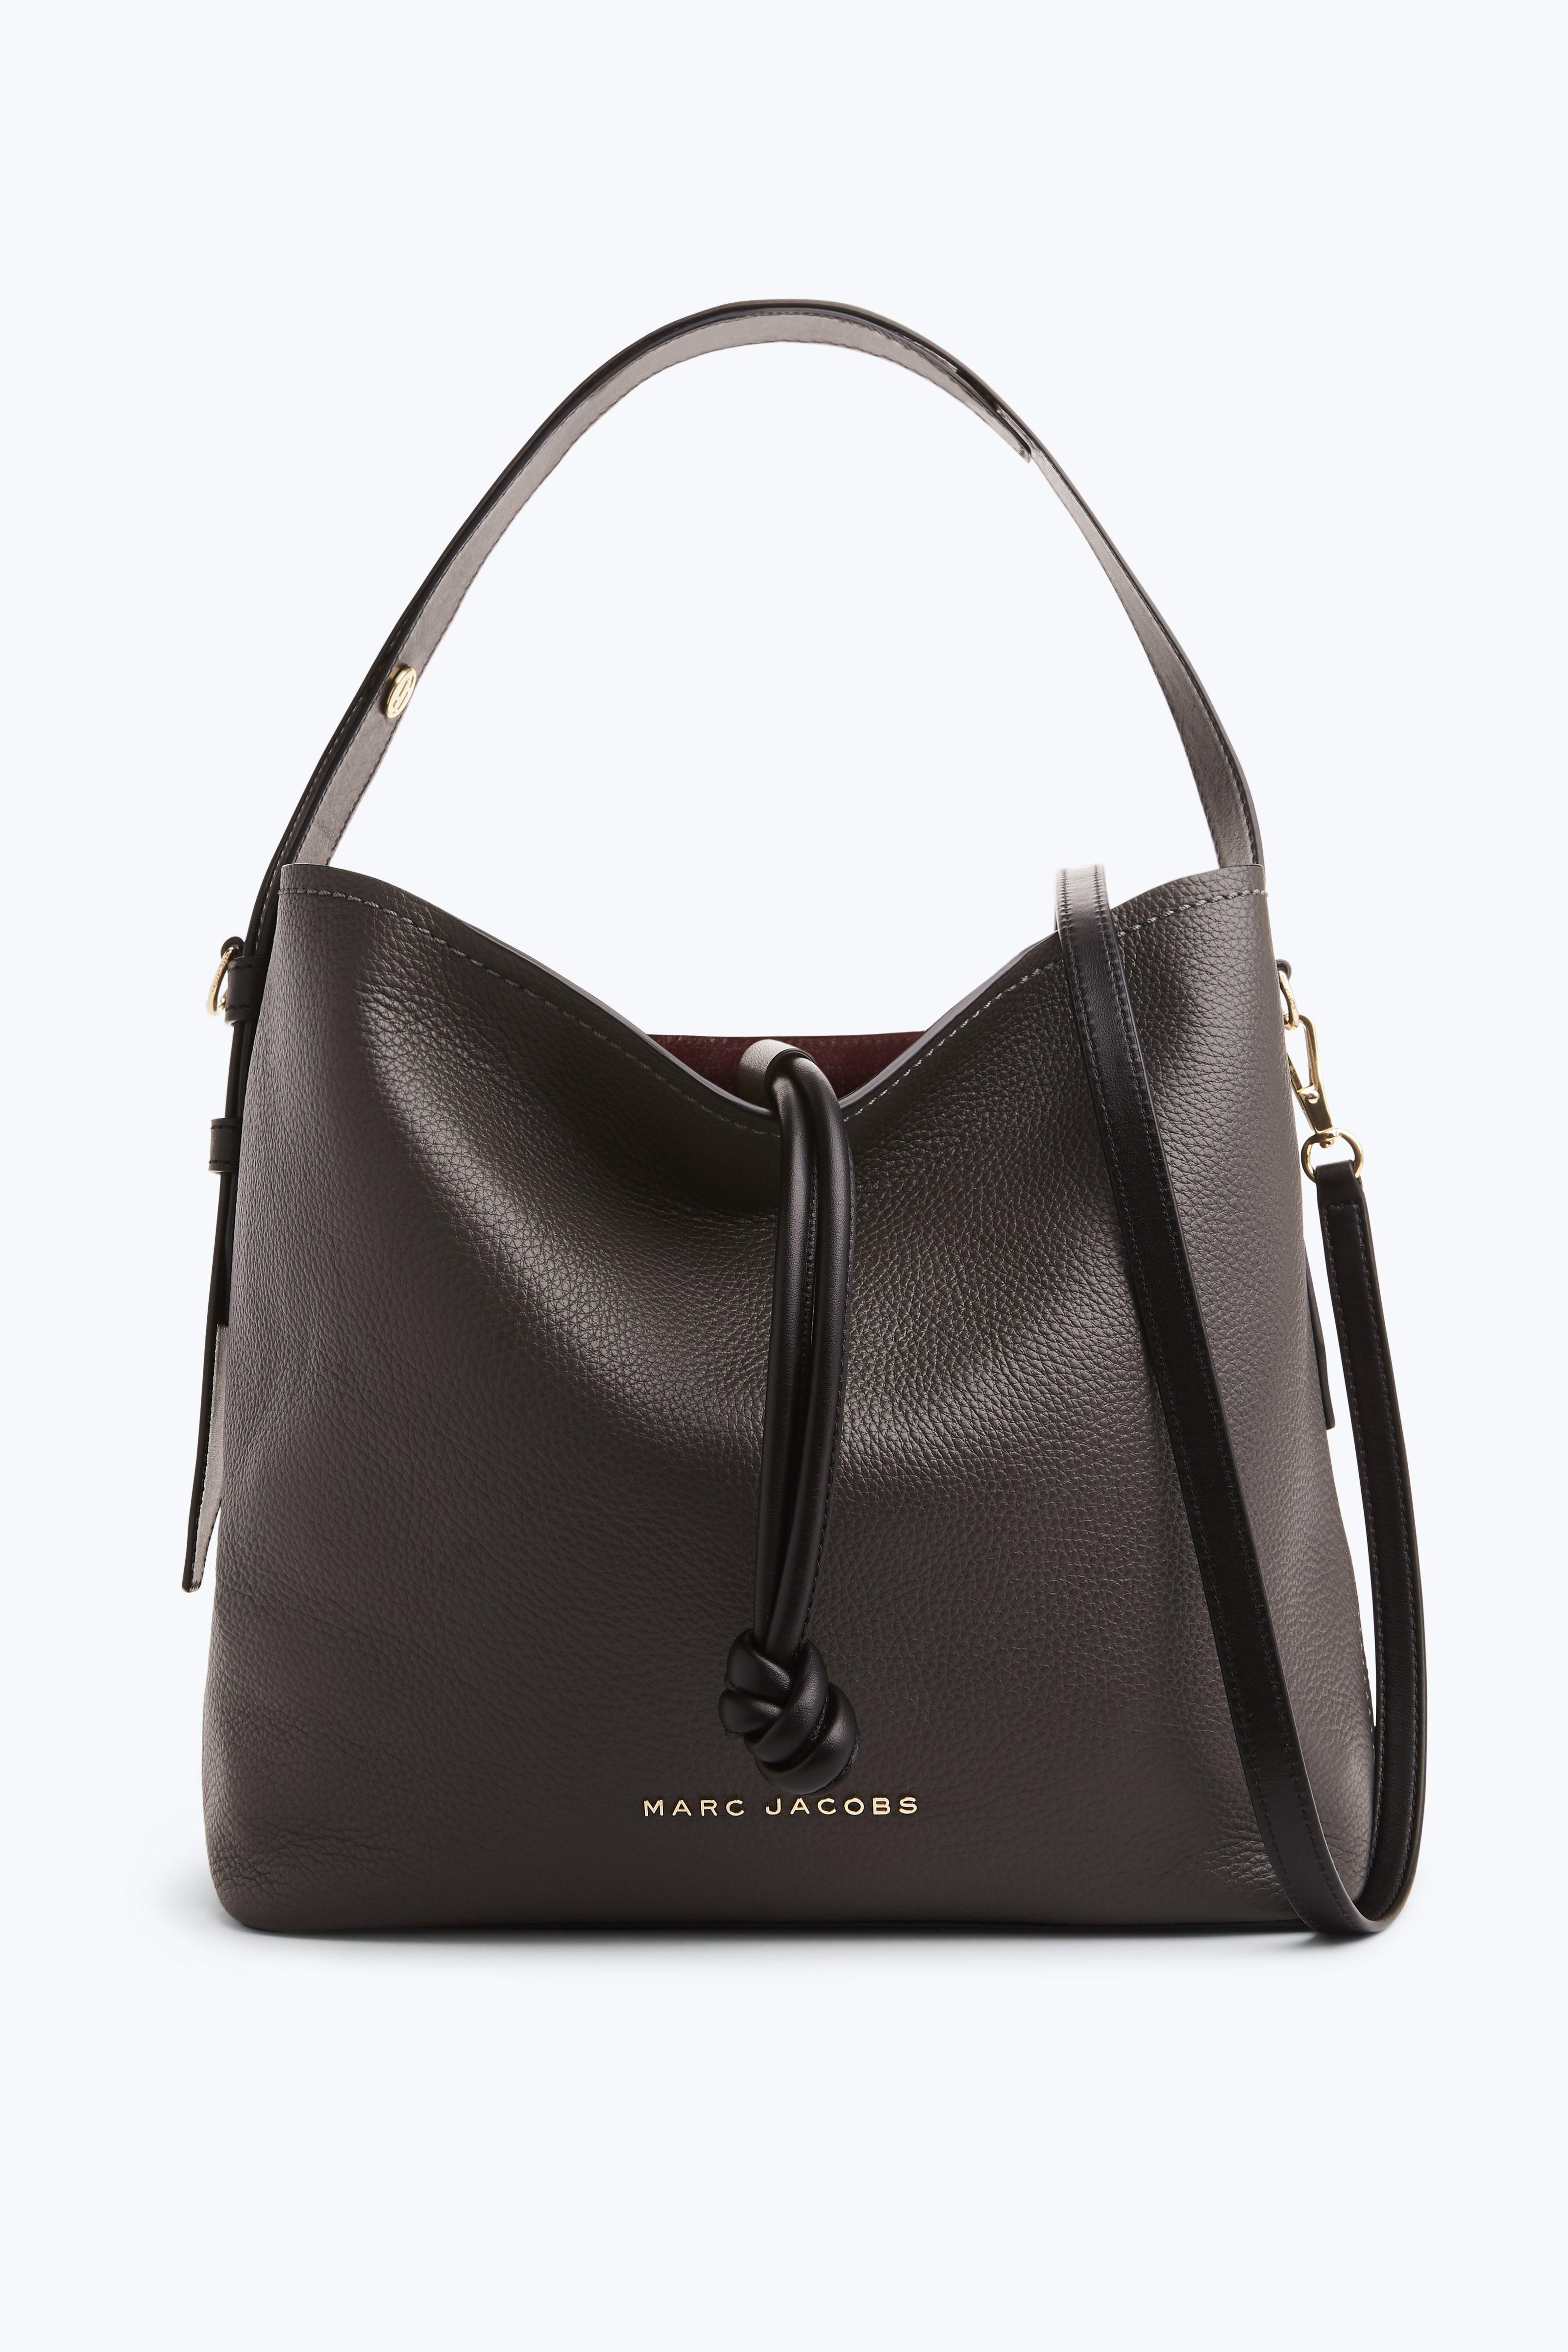 468c8beb7 MARC JACOBS Road Hobo Bag. #marcjacobs #bags #shoulder bags #leather  #canvas #hobo #lining #